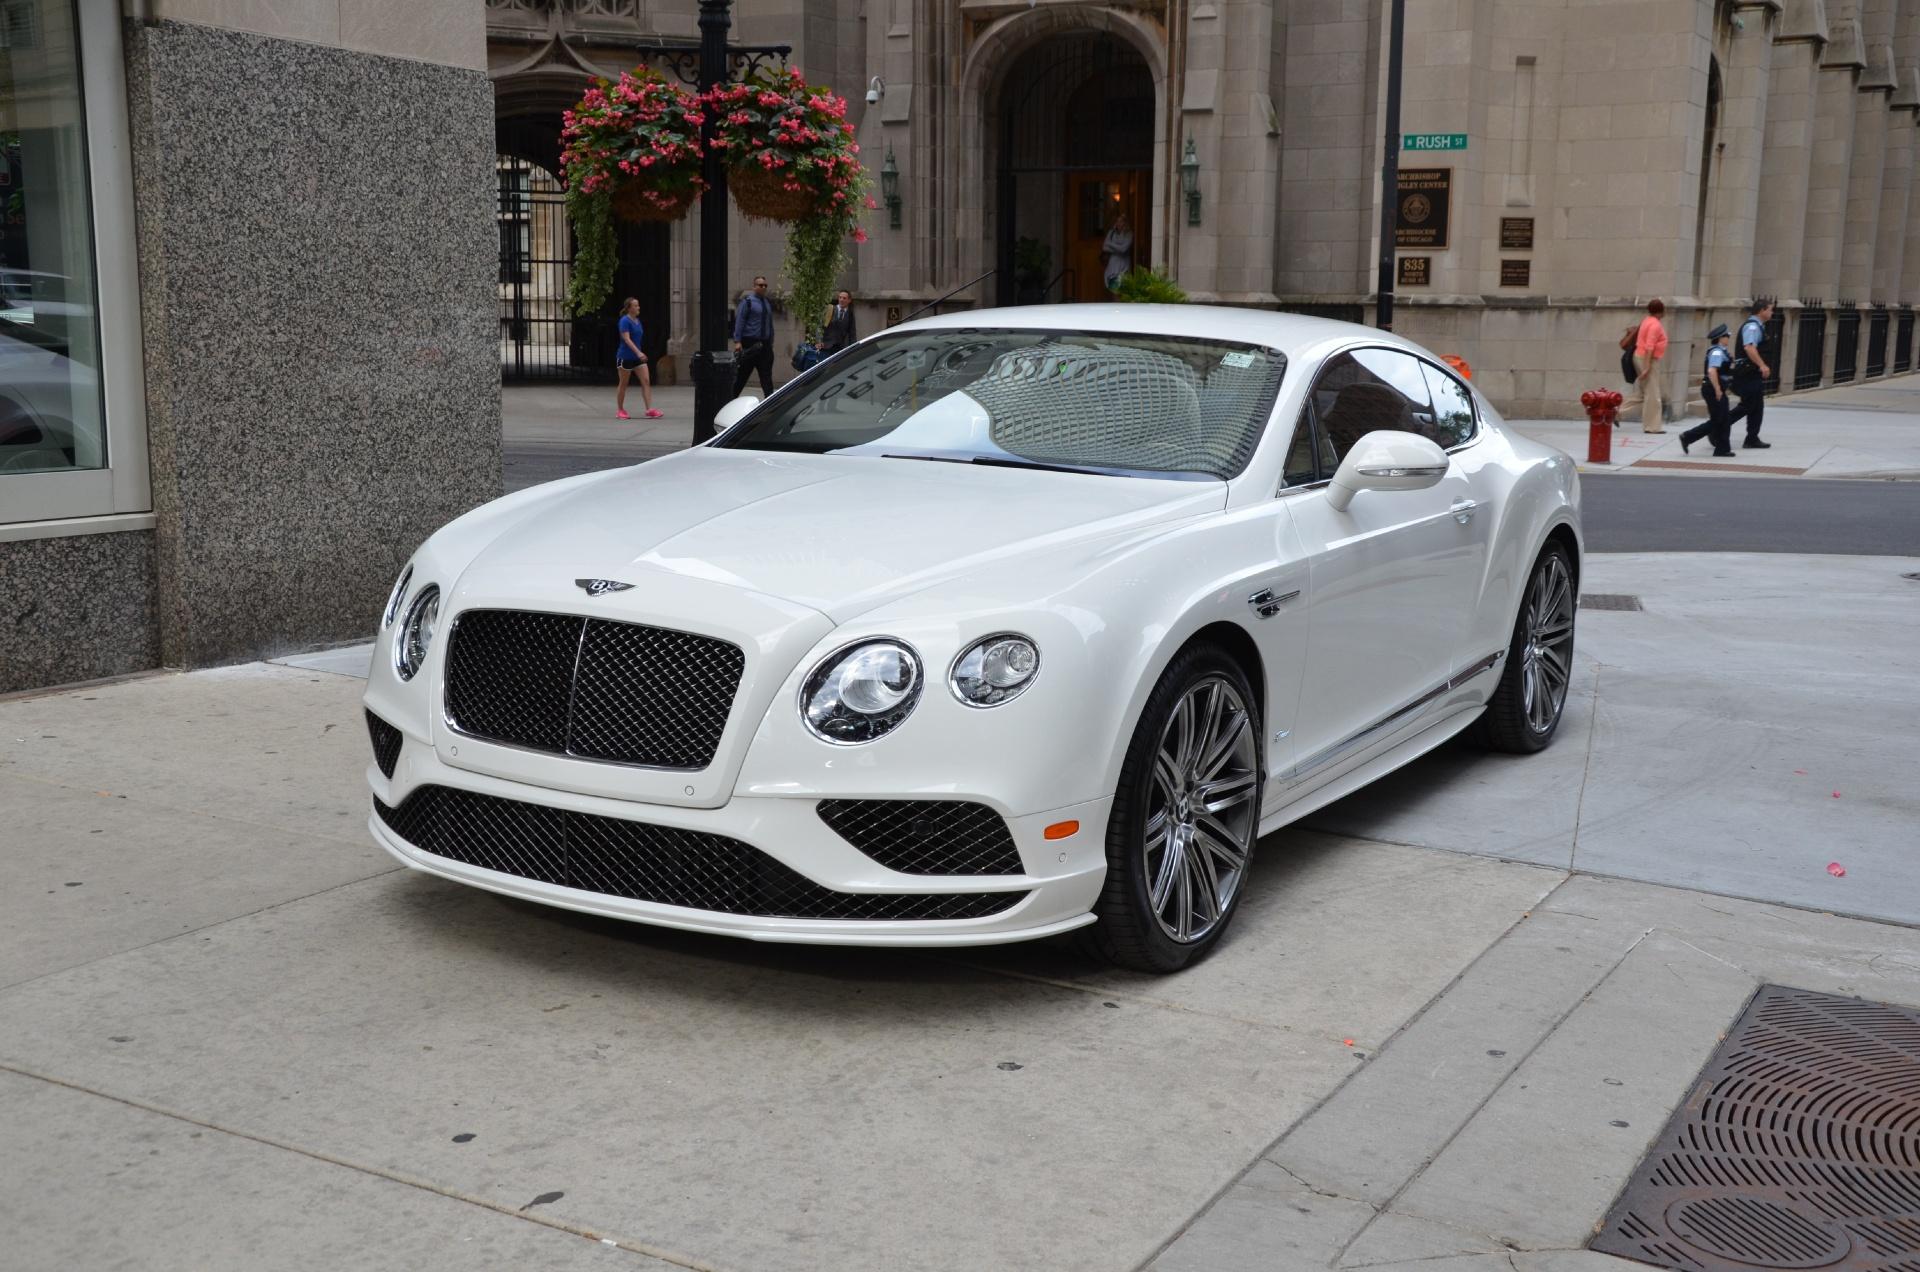 2016 Bentley Continental GT Speed Stock # GC-ROLAND158 for sale near ...